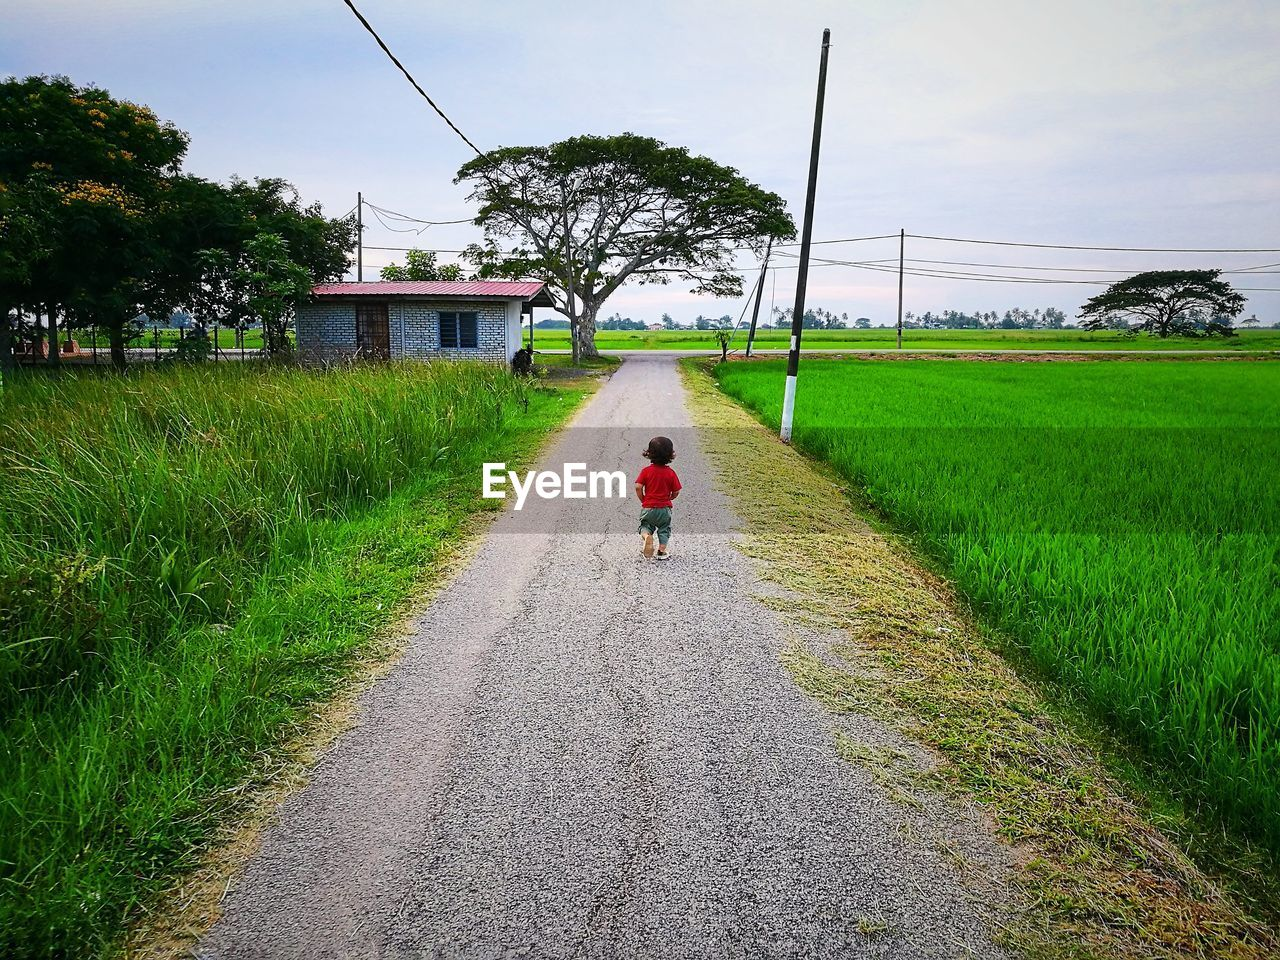 full length, real people, grass, rear view, one person, growth, day, the way forward, field, green color, walking, road, agriculture, outdoors, transportation, tree, sky, rural scene, plant, nature, childhood, people